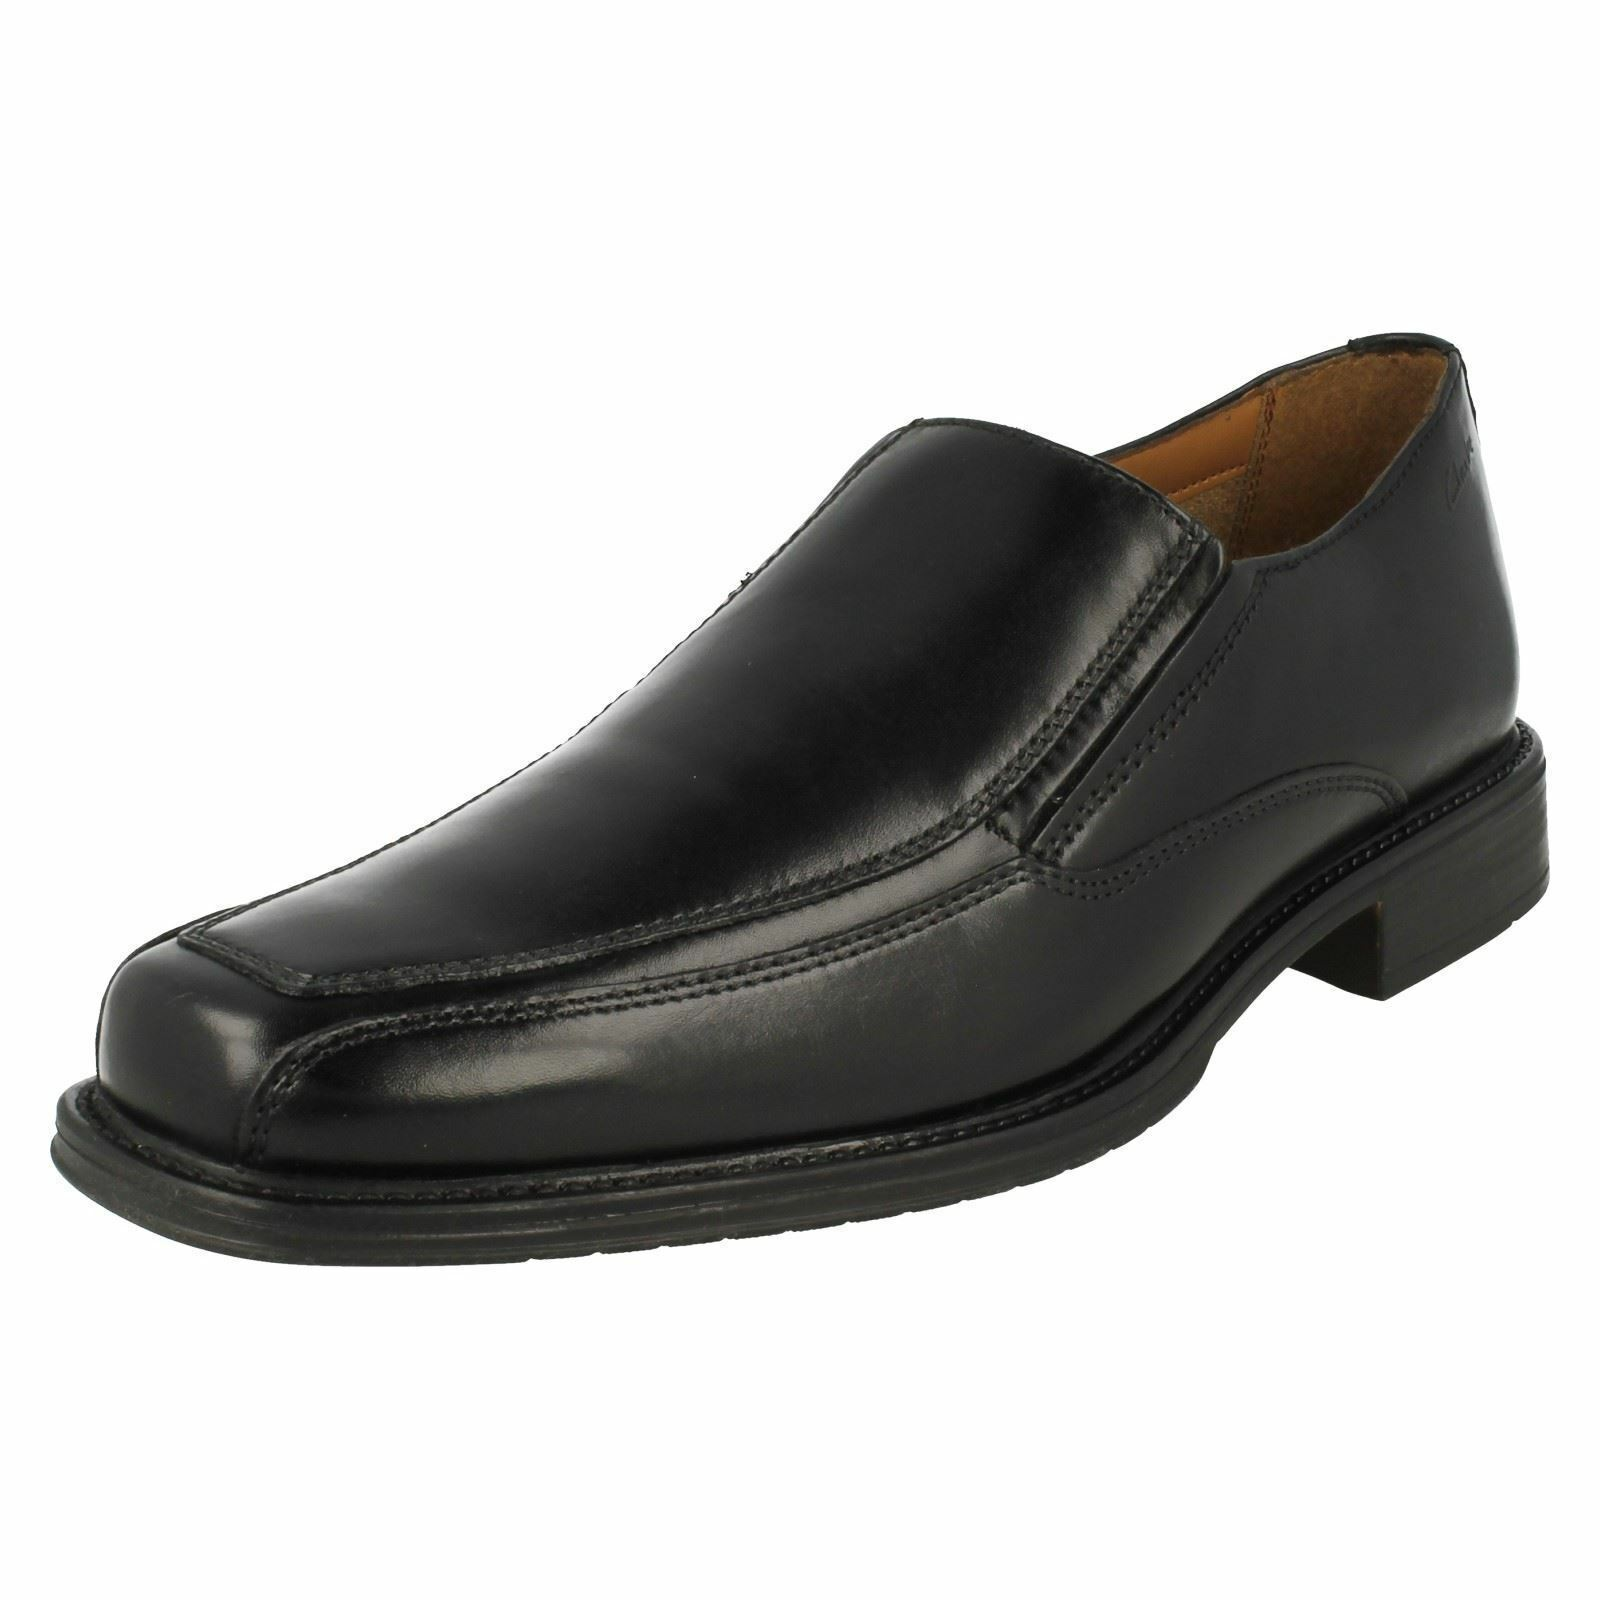 Mens Clarks Driggs Slip Free schwarz Leder Smart Slip Driggs On Schuhes G Fitting da3a32